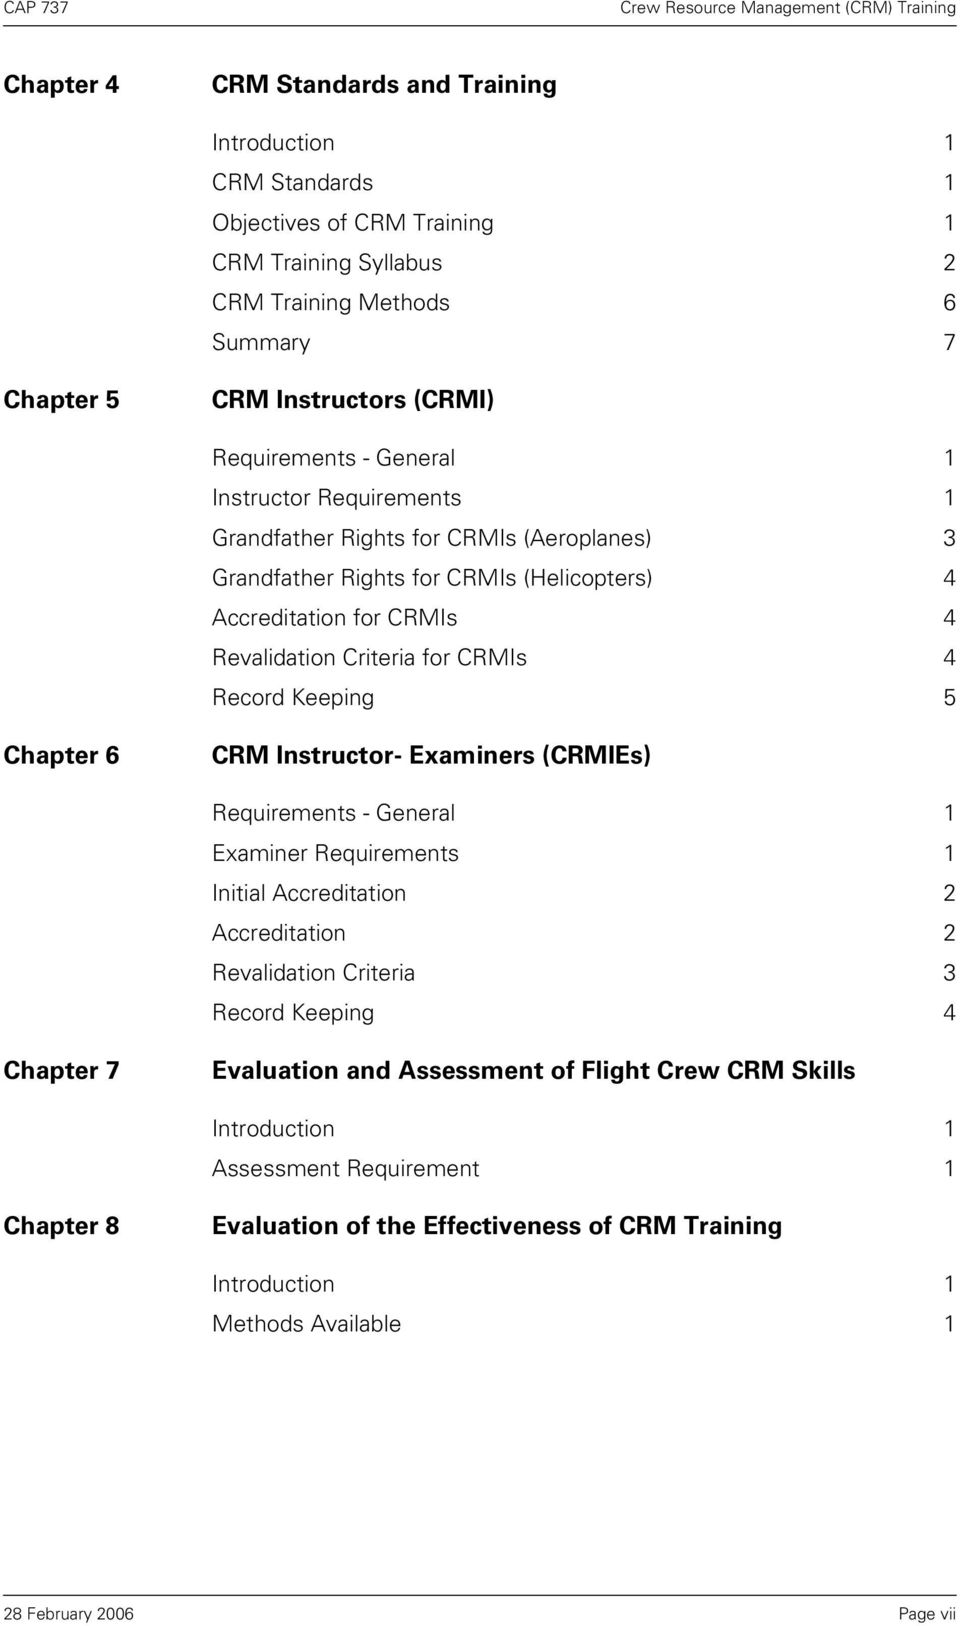 CRMIs 4 Record Keeping 5 Chapter 6 CRM Instructor- Examiners (CRMIEs) Requirements - General 1 Examiner Requirements 1 Initial Accreditation 2 Accreditation 2 Revalidation Criteria 3 Record